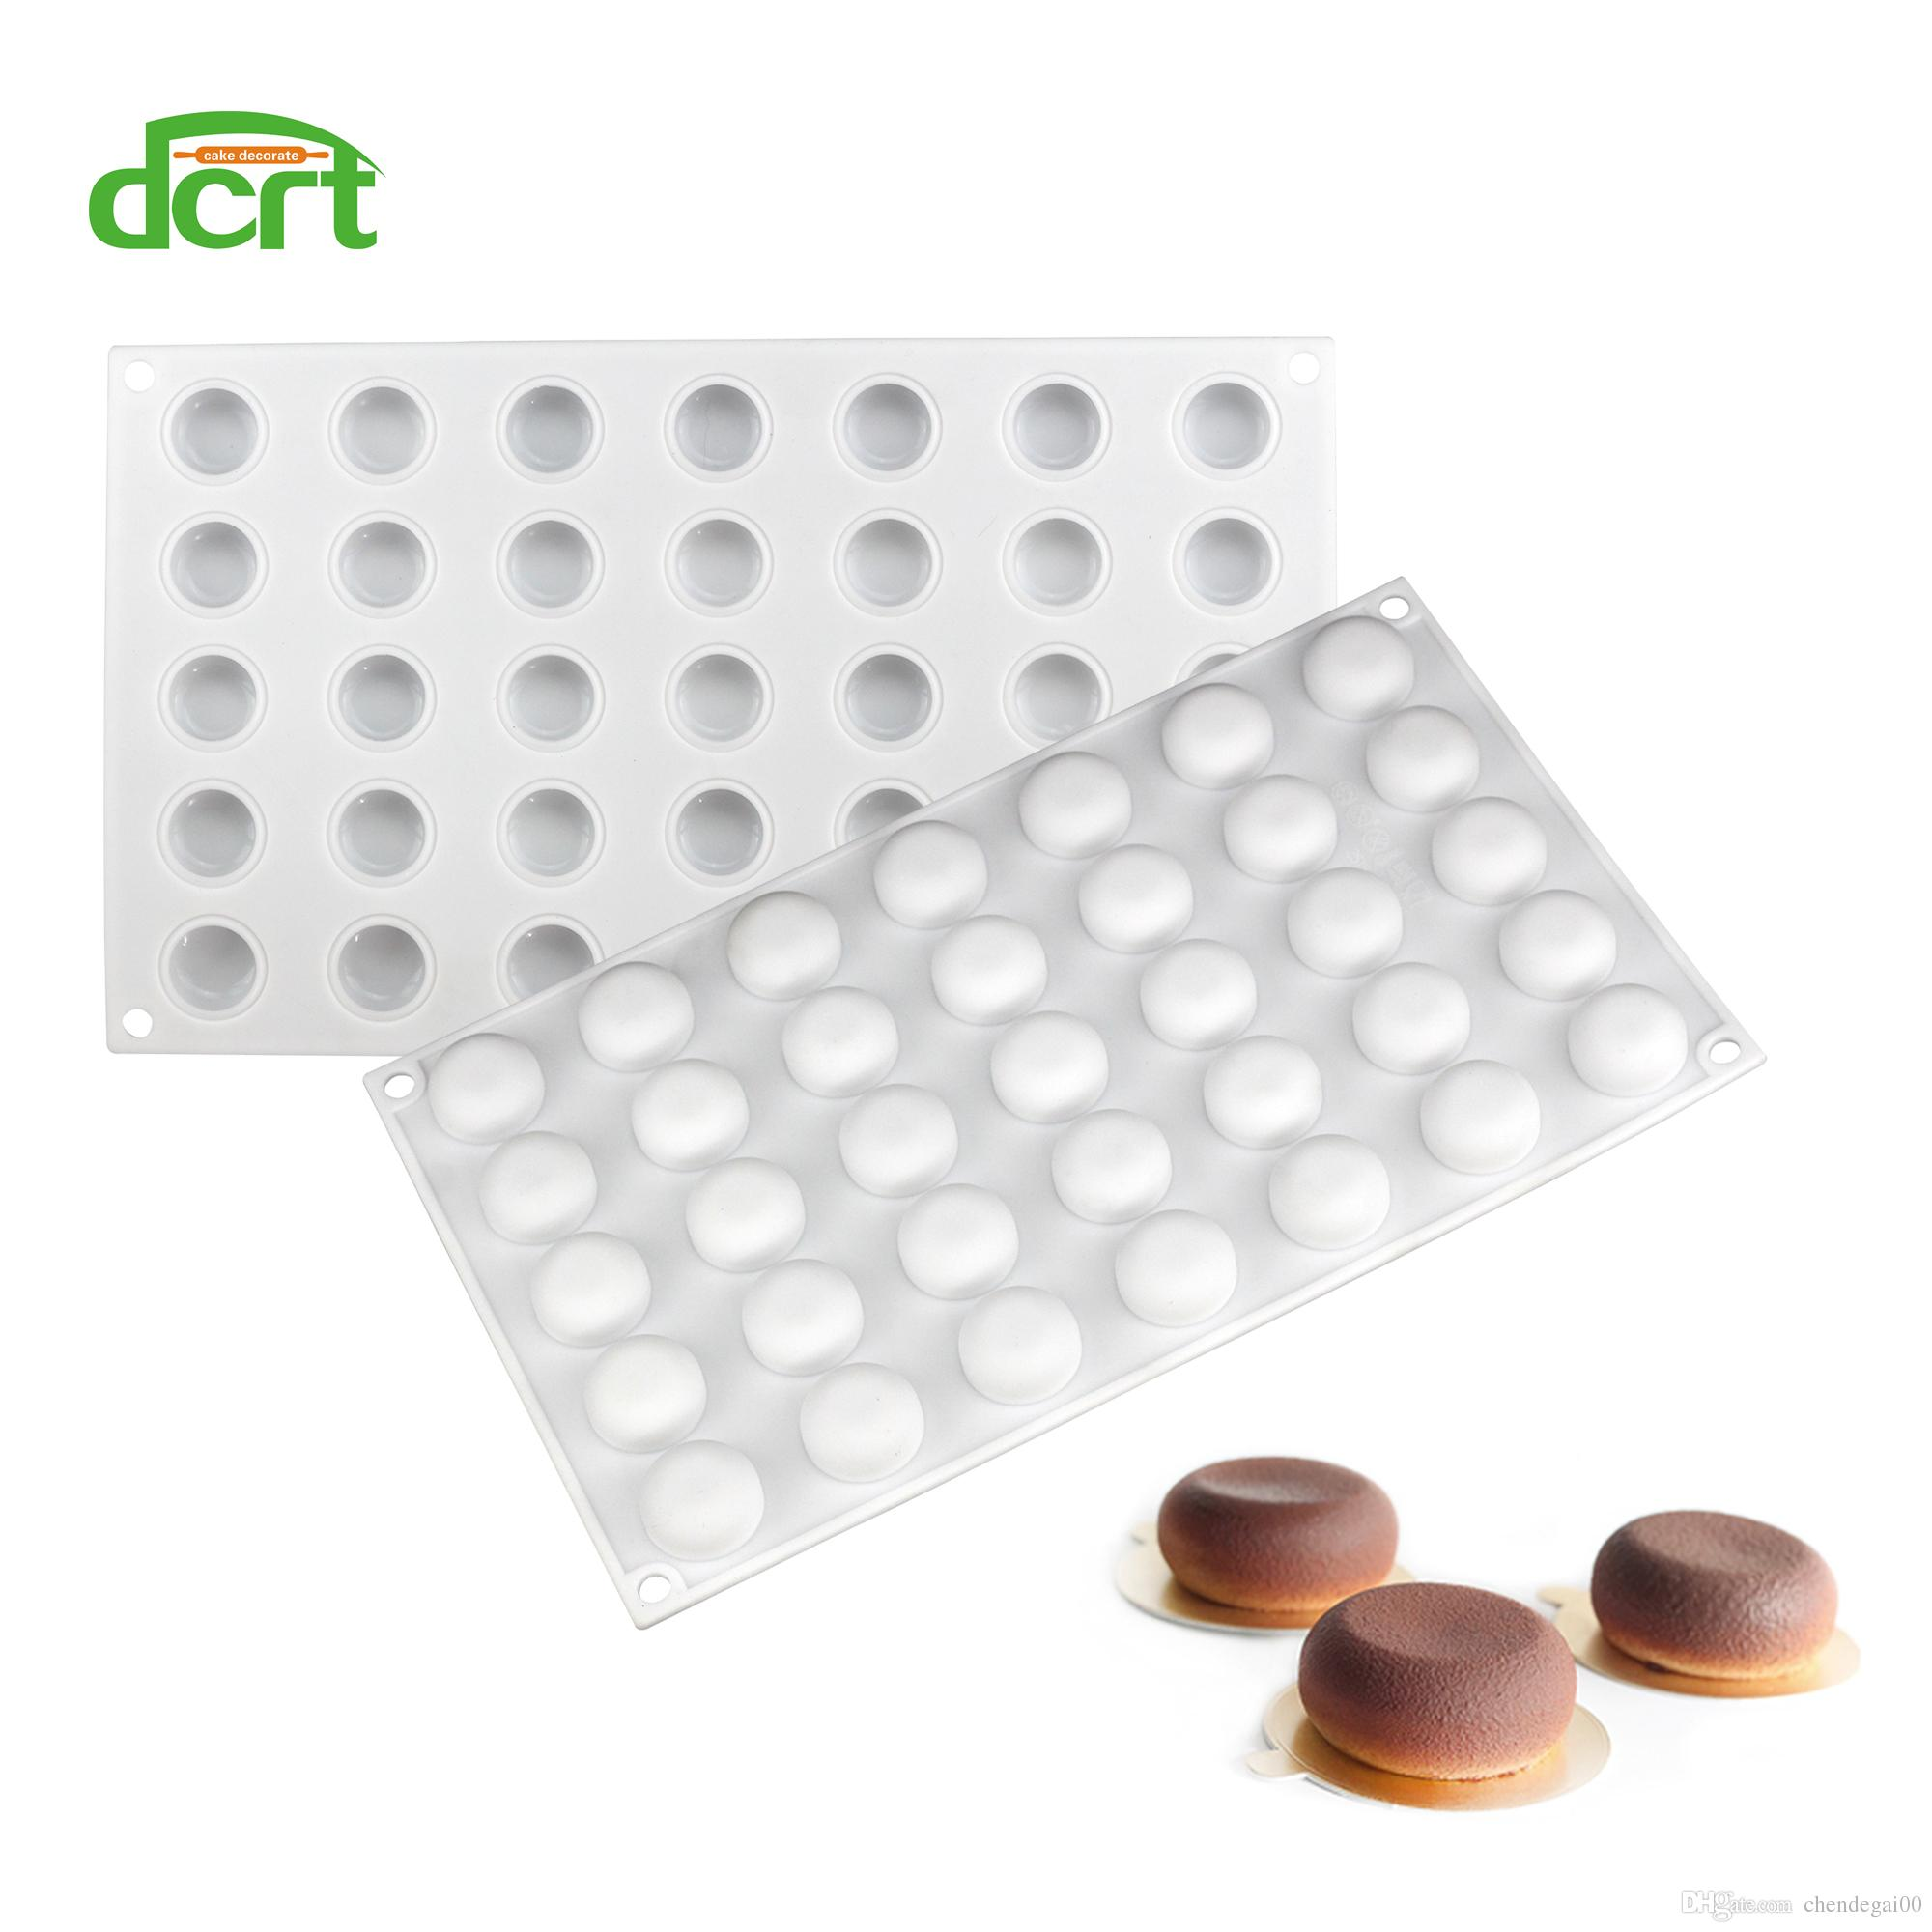 3D Silicone Round 35 Cavity Cake Mold Dessert Mould Decorating Baking Tools for Chocolate Pudding Jelly Soap Pastry Tools